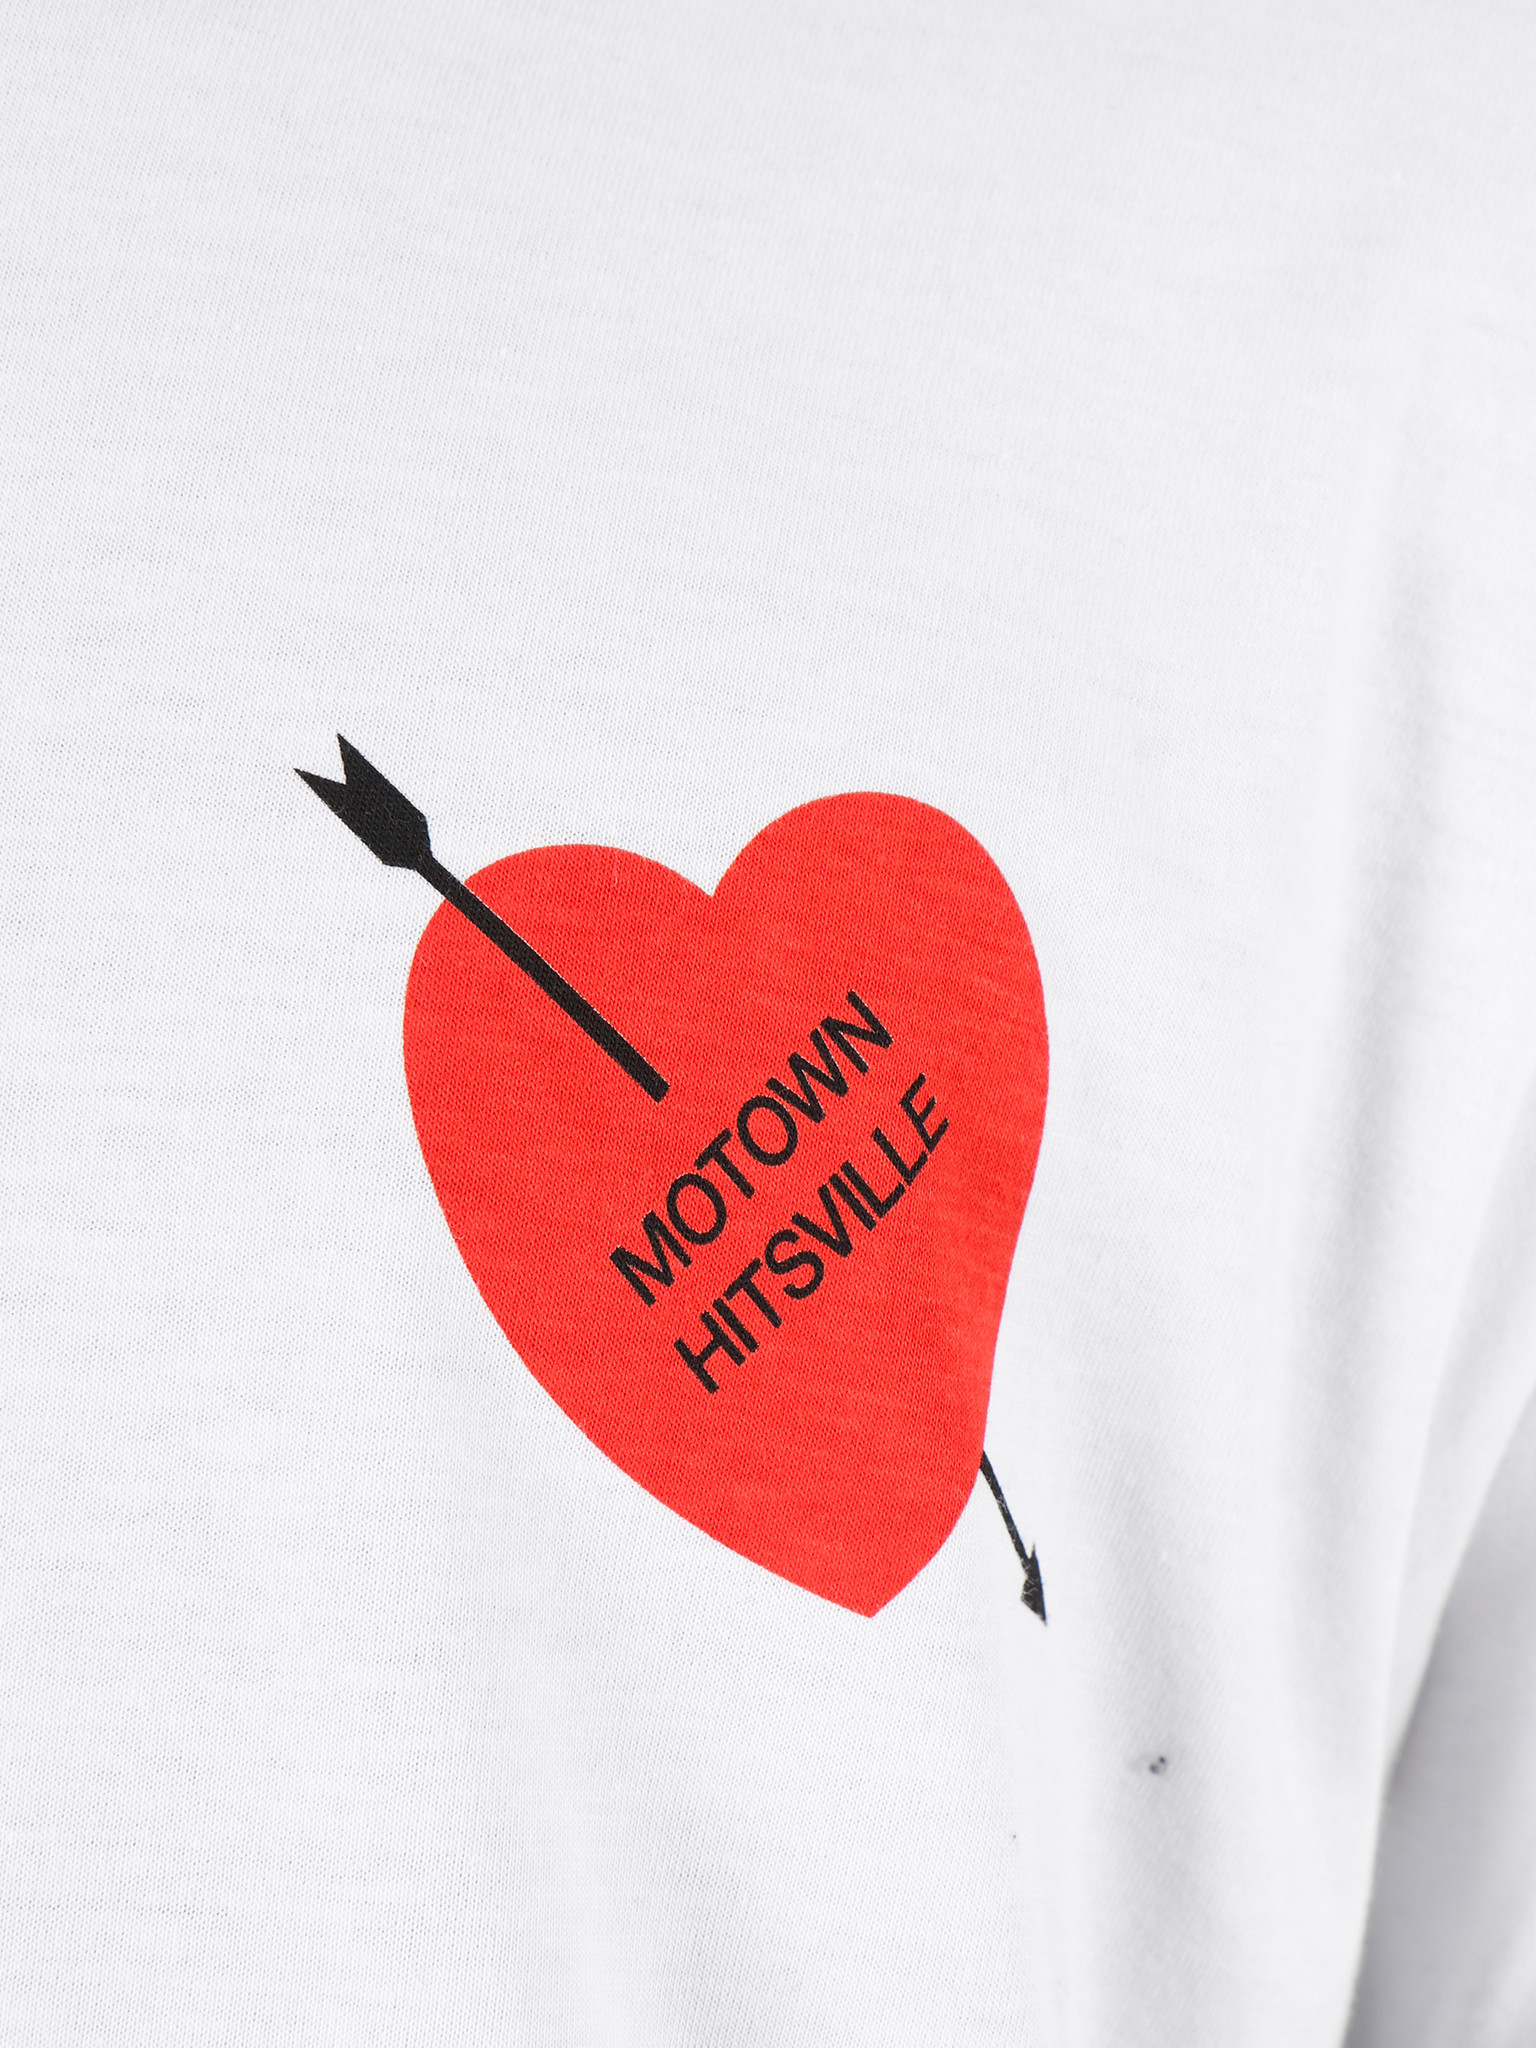 Carhartt WIP Carhartt WIP Motown Together T-Shirt White I027855